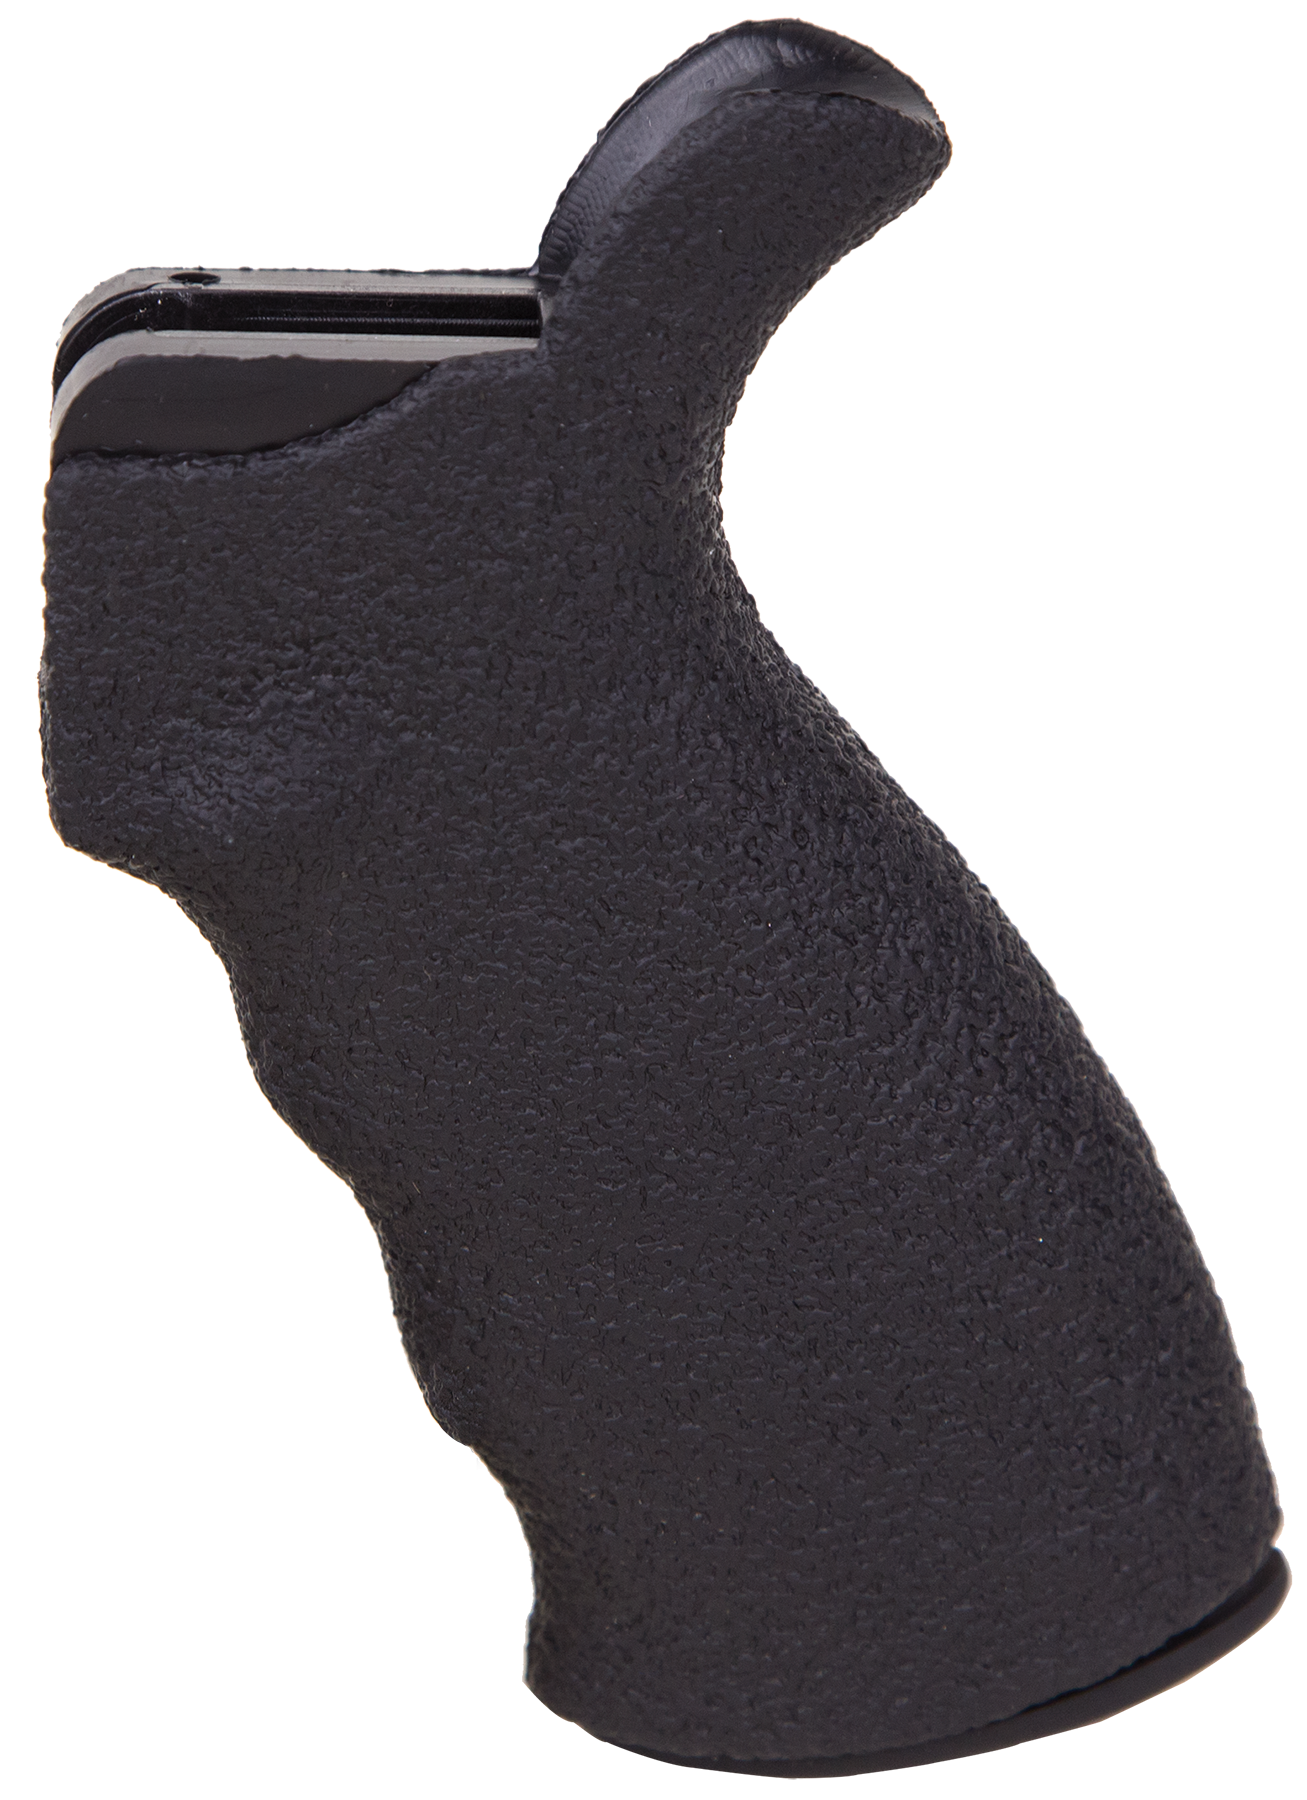 Blackhawk 74EG00BK Ergonomic Pistol Grip AR-15 Matte Black Rubber